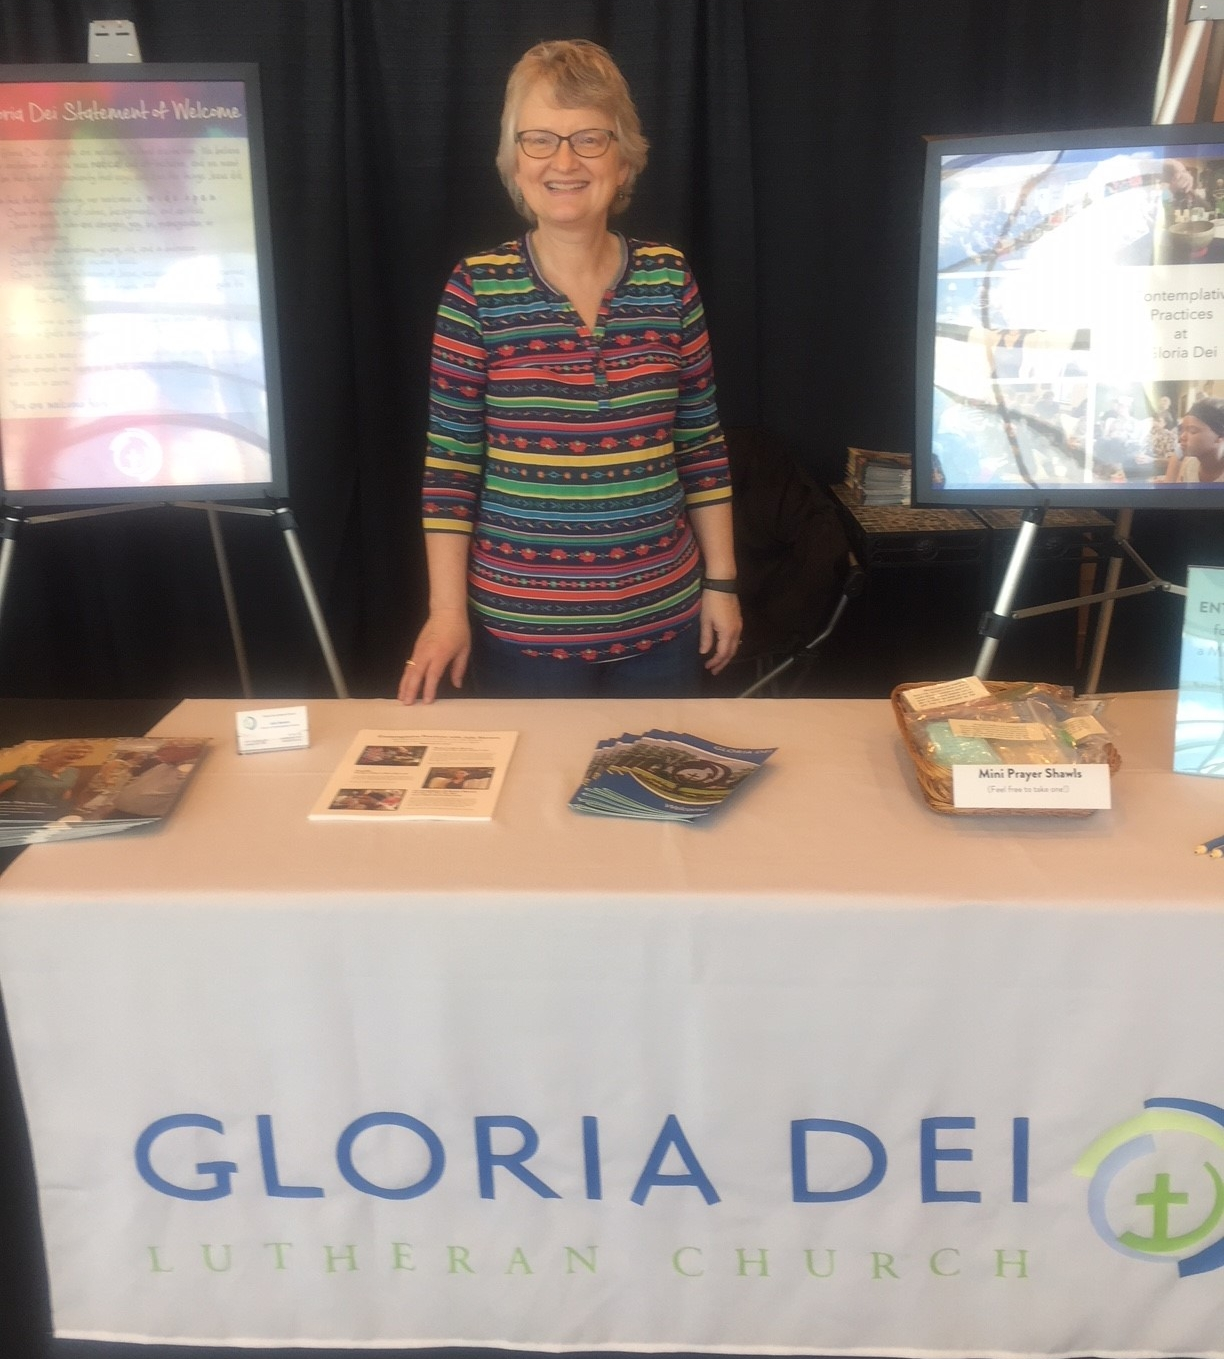 Julie spoke at The Women and Spirituality Conference in Rochester, MN on September 21, 2018.